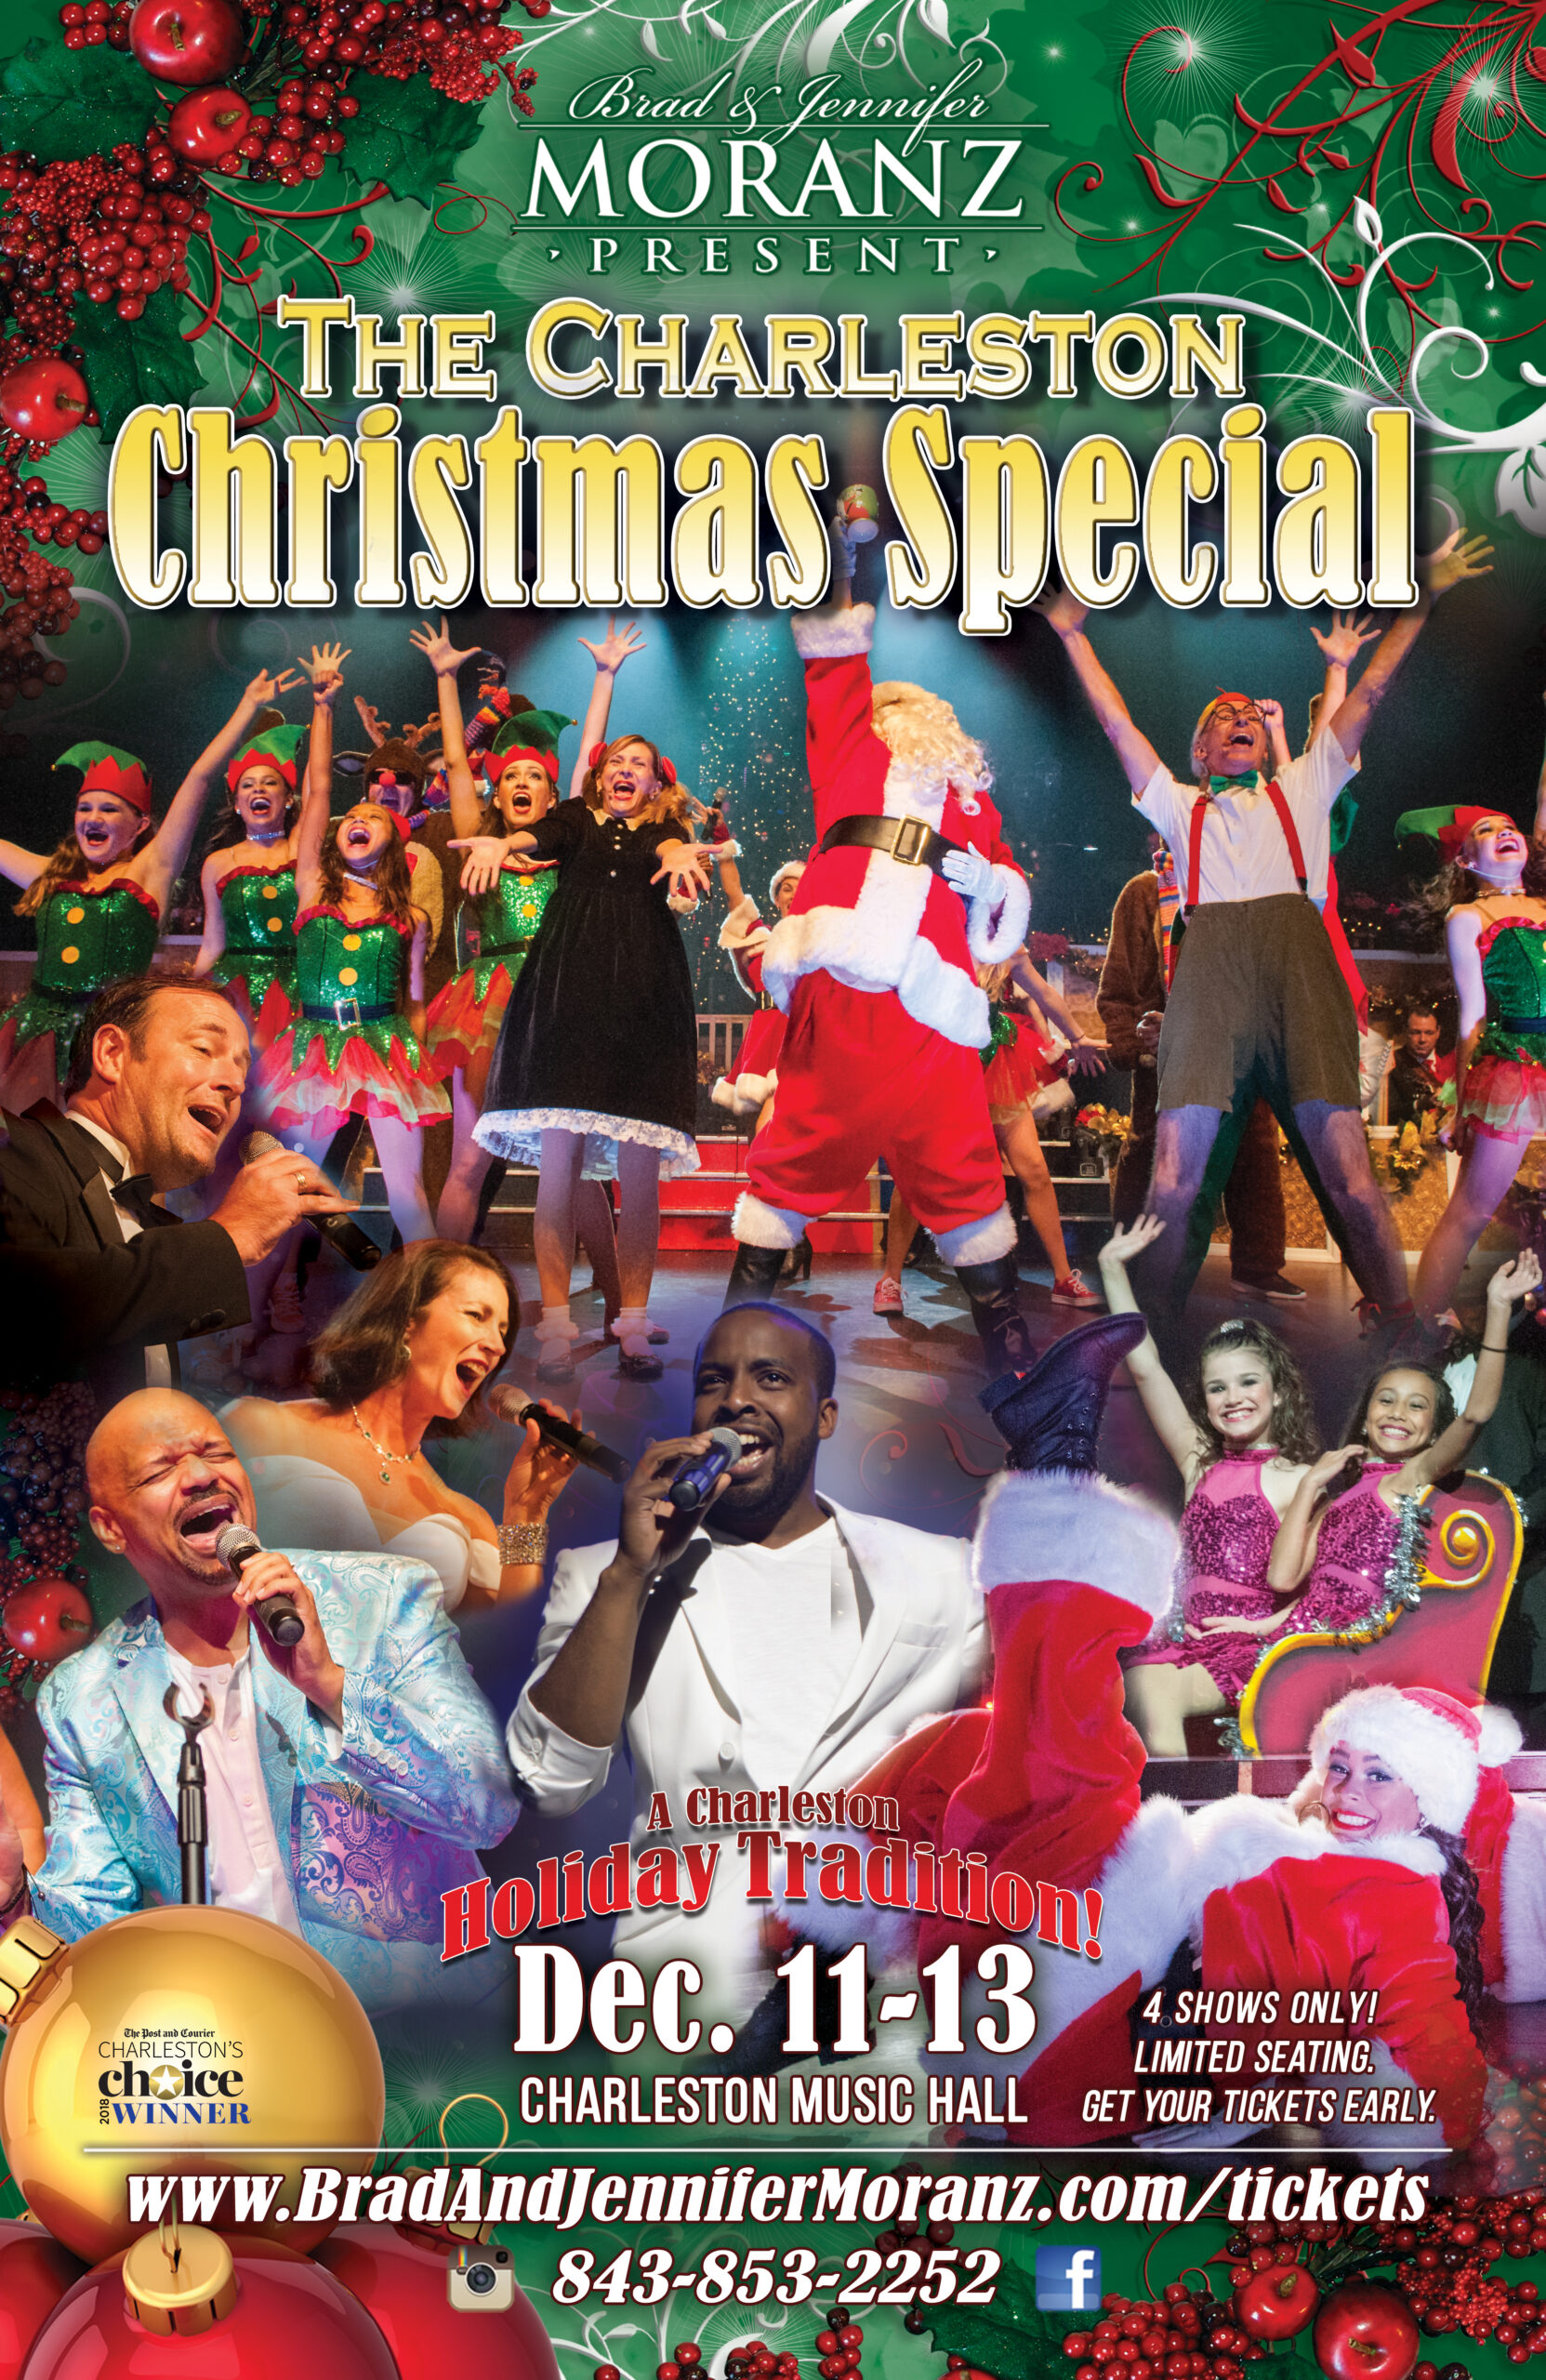 Southern Christmas Show 2020 Charleston Sc The Charleston Christmas Special